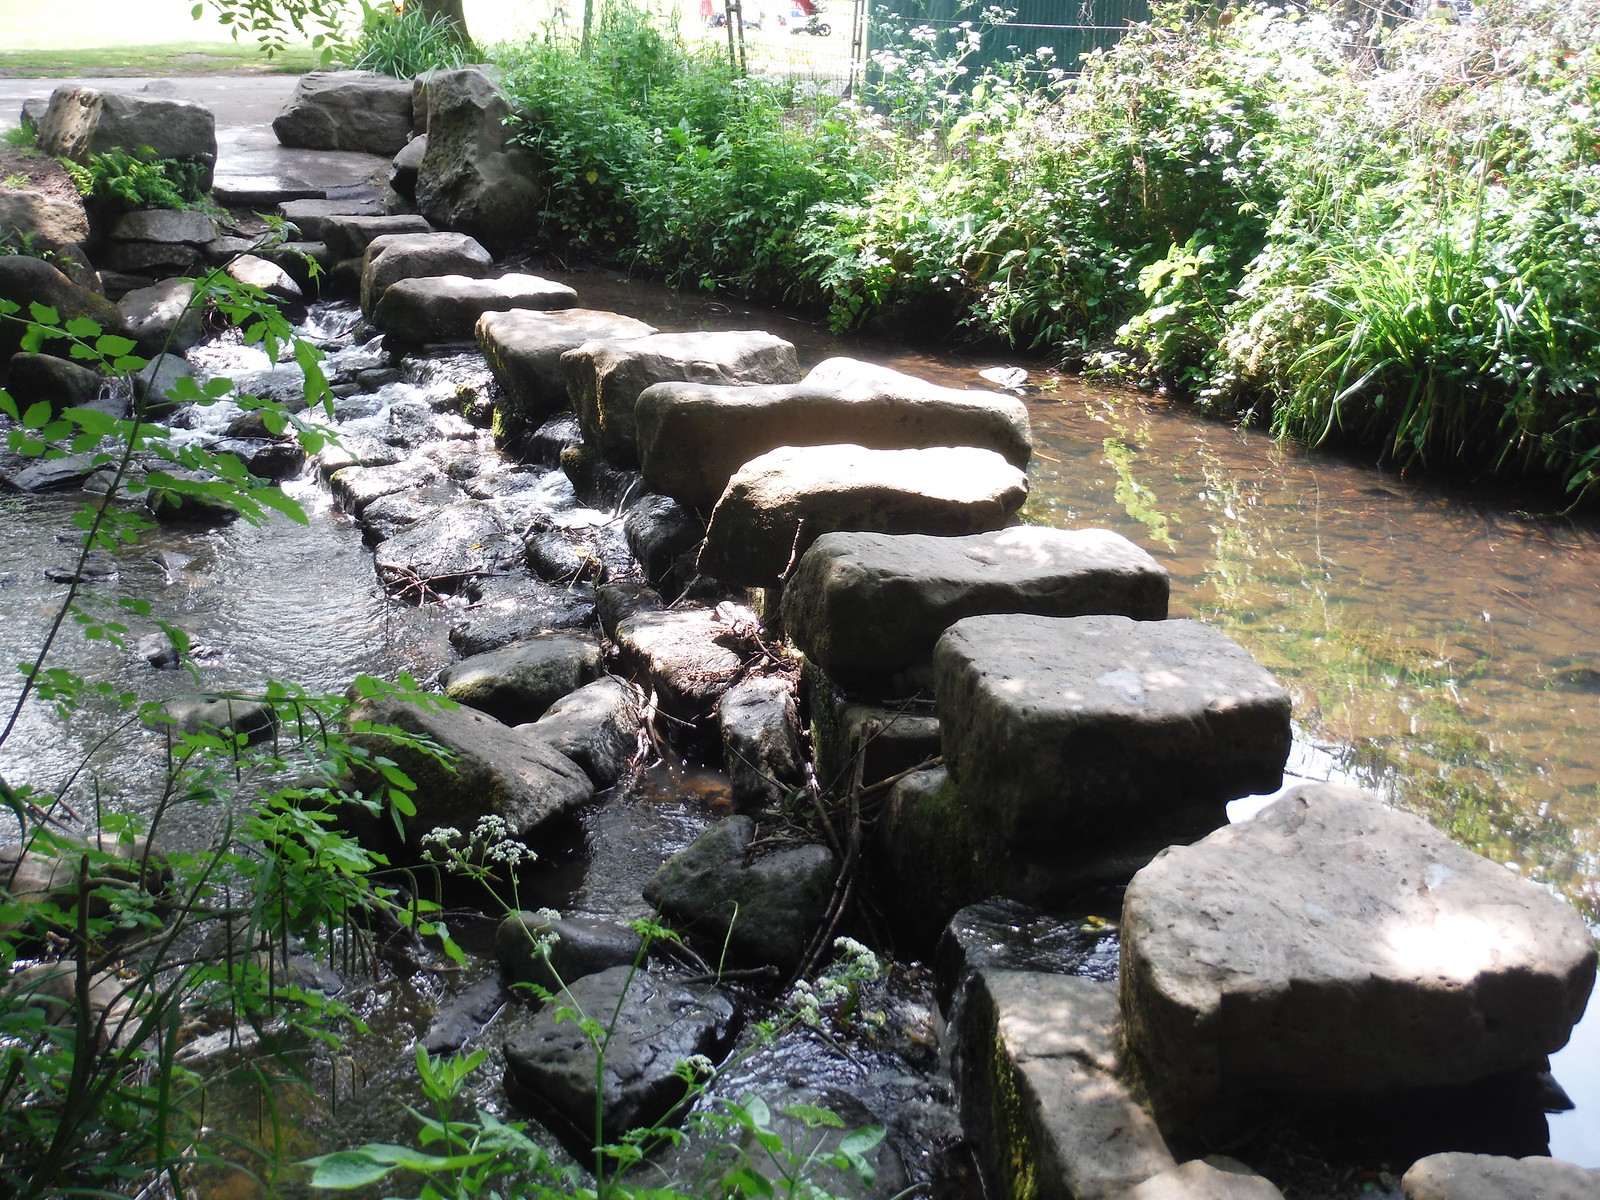 Endcliffe Park, Stepping Stones SWC Walk 267 - Sheffield Circular (via Porter, Limb, Sheaf and Gleadless Valleys)